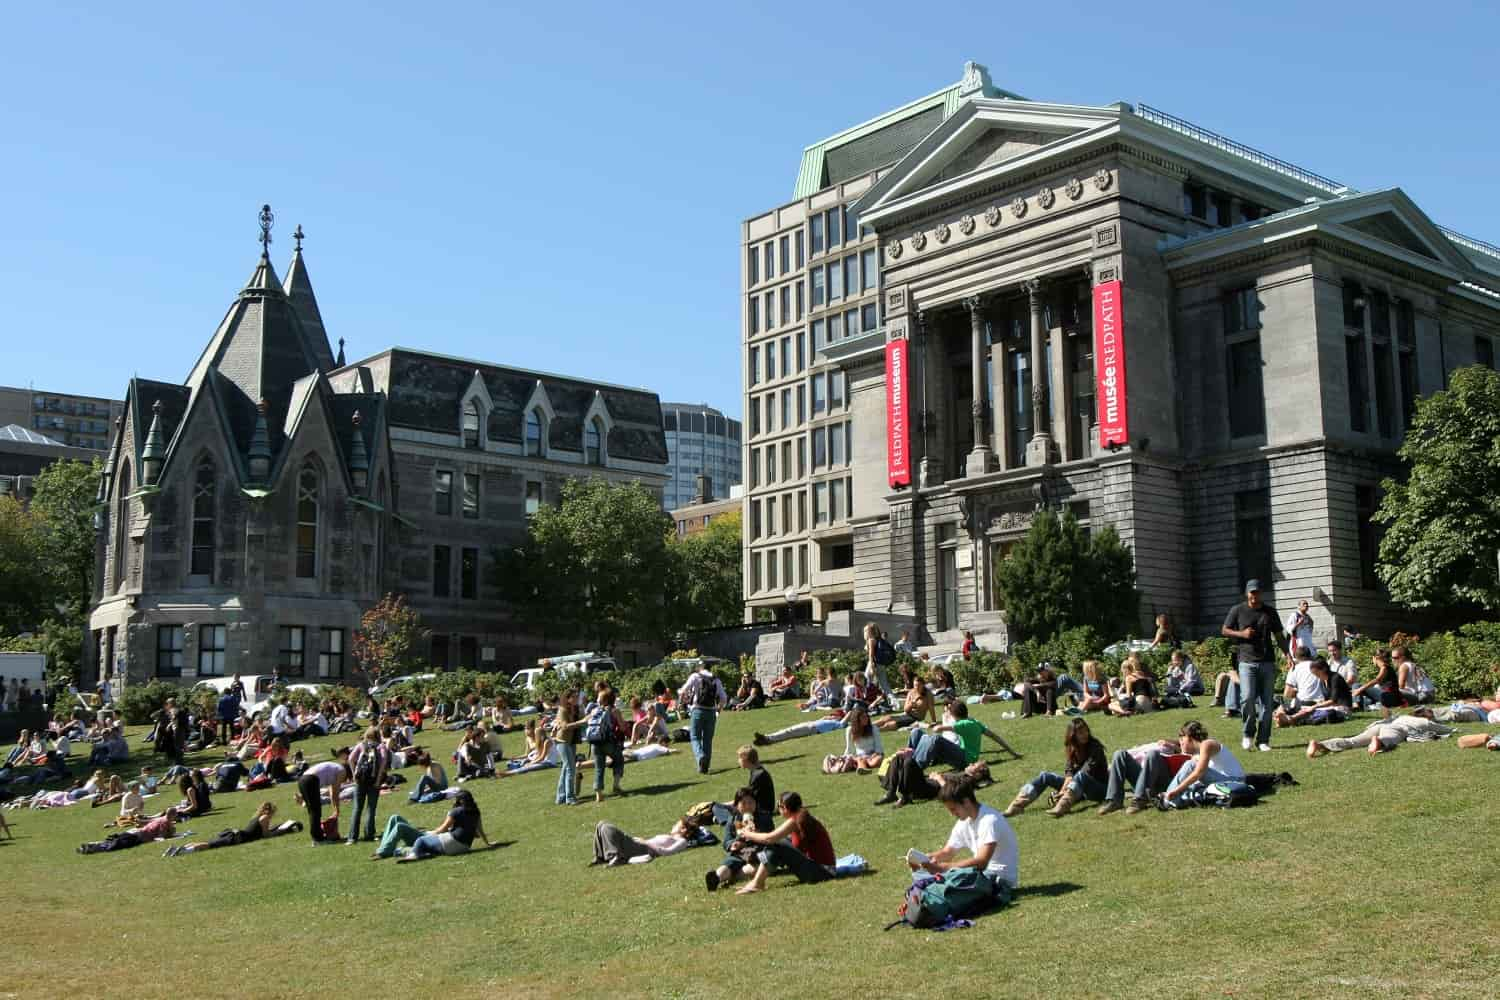 What is the acceptance rate and ranking of McGill University